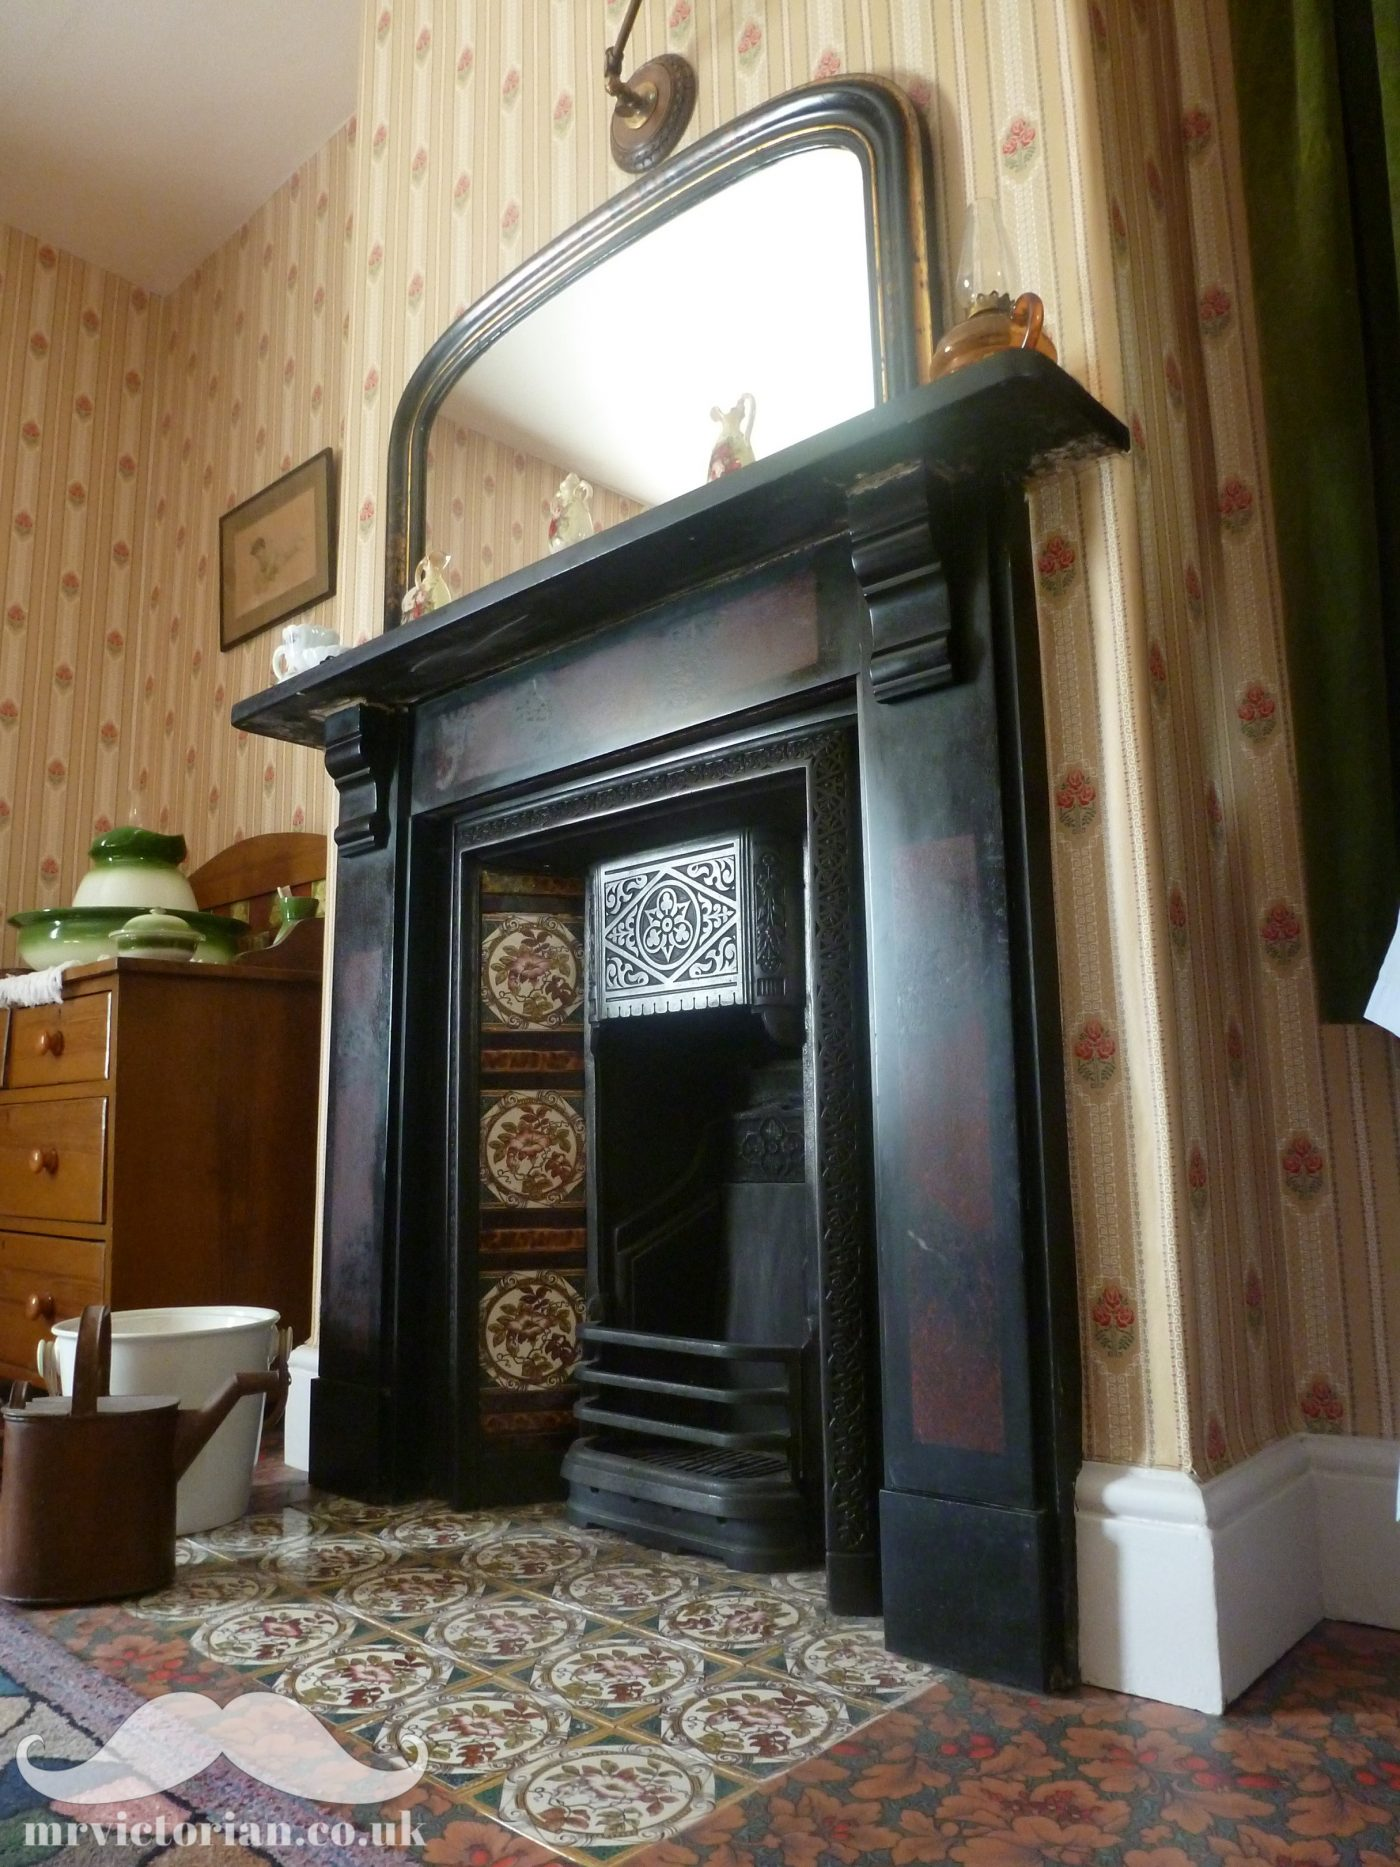 Wondrous Top Tips For Reinstating A Victorian Fireplace Mr Victorian Home Interior And Landscaping Ologienasavecom